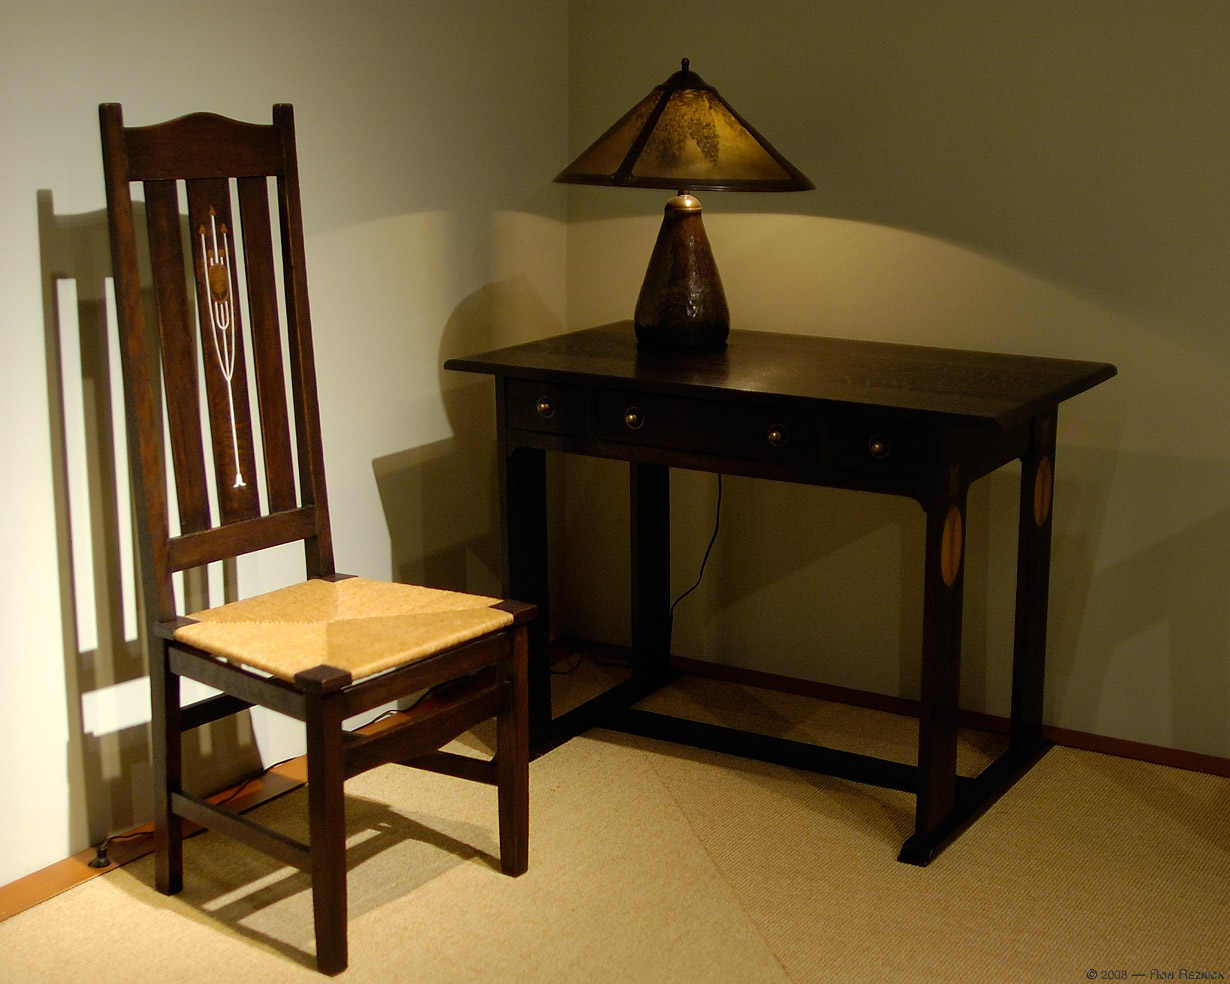 Stickley Chair, Palmer Lamp